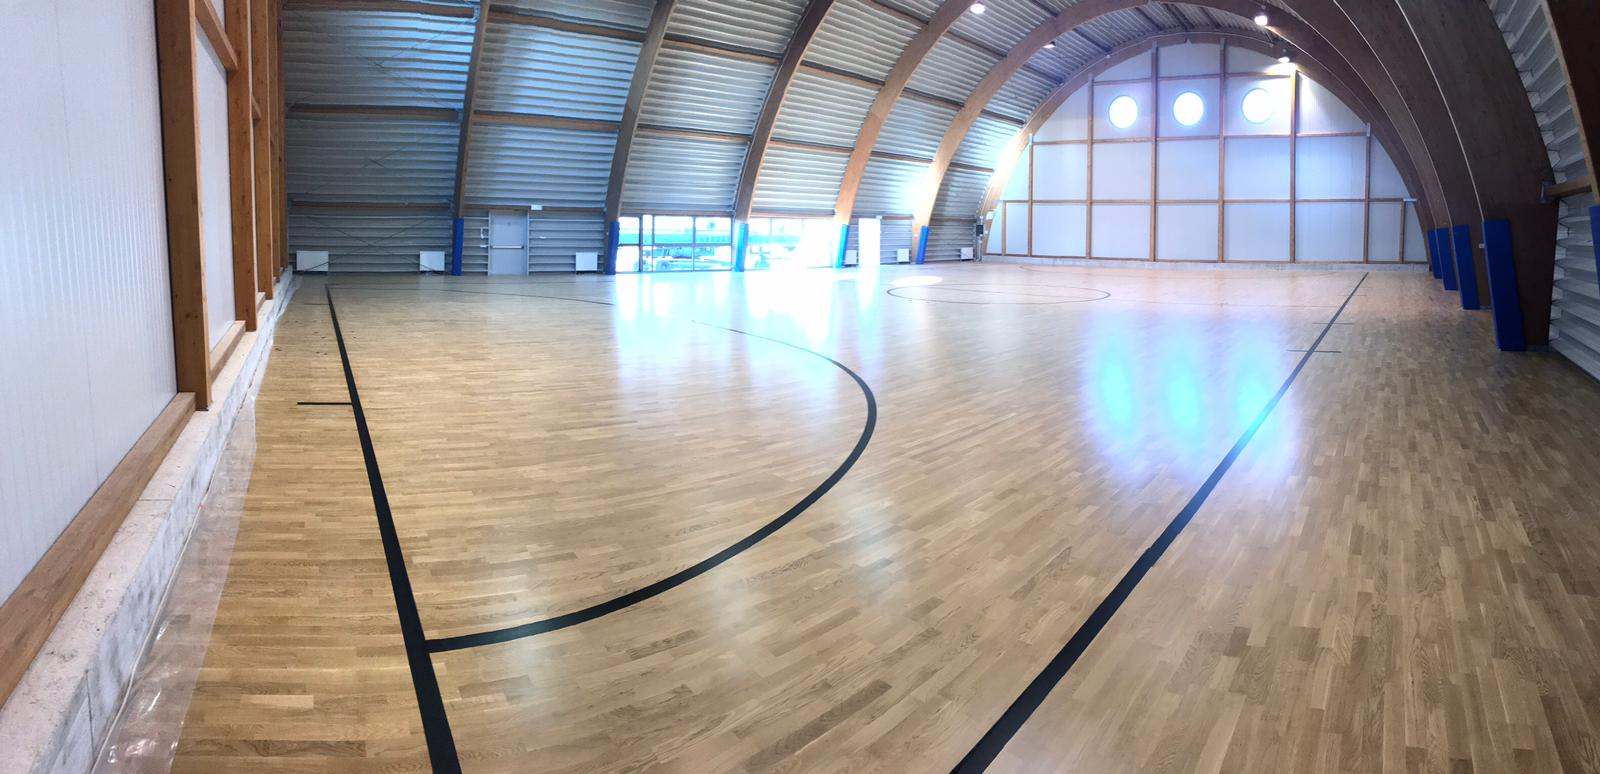 The new sports parquet designed by Dalla Riva